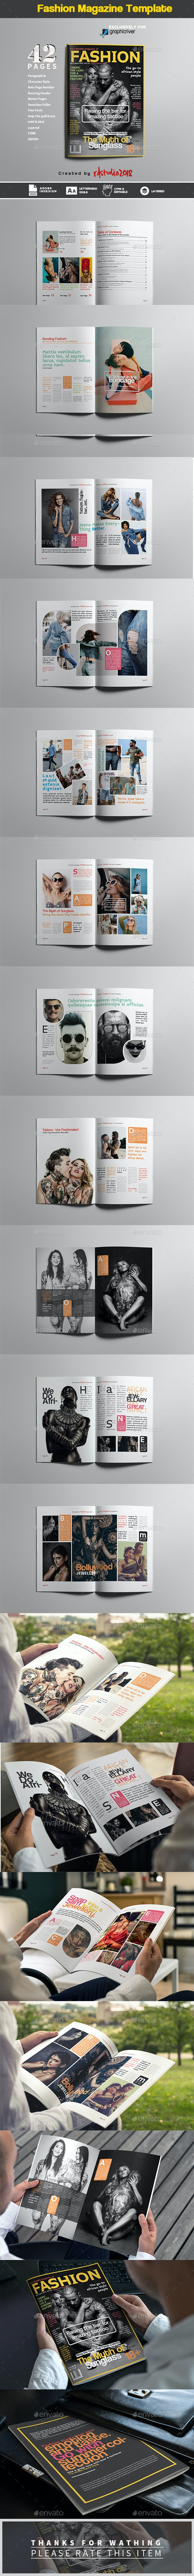 Fashion Magazine - Magazines Print Templates